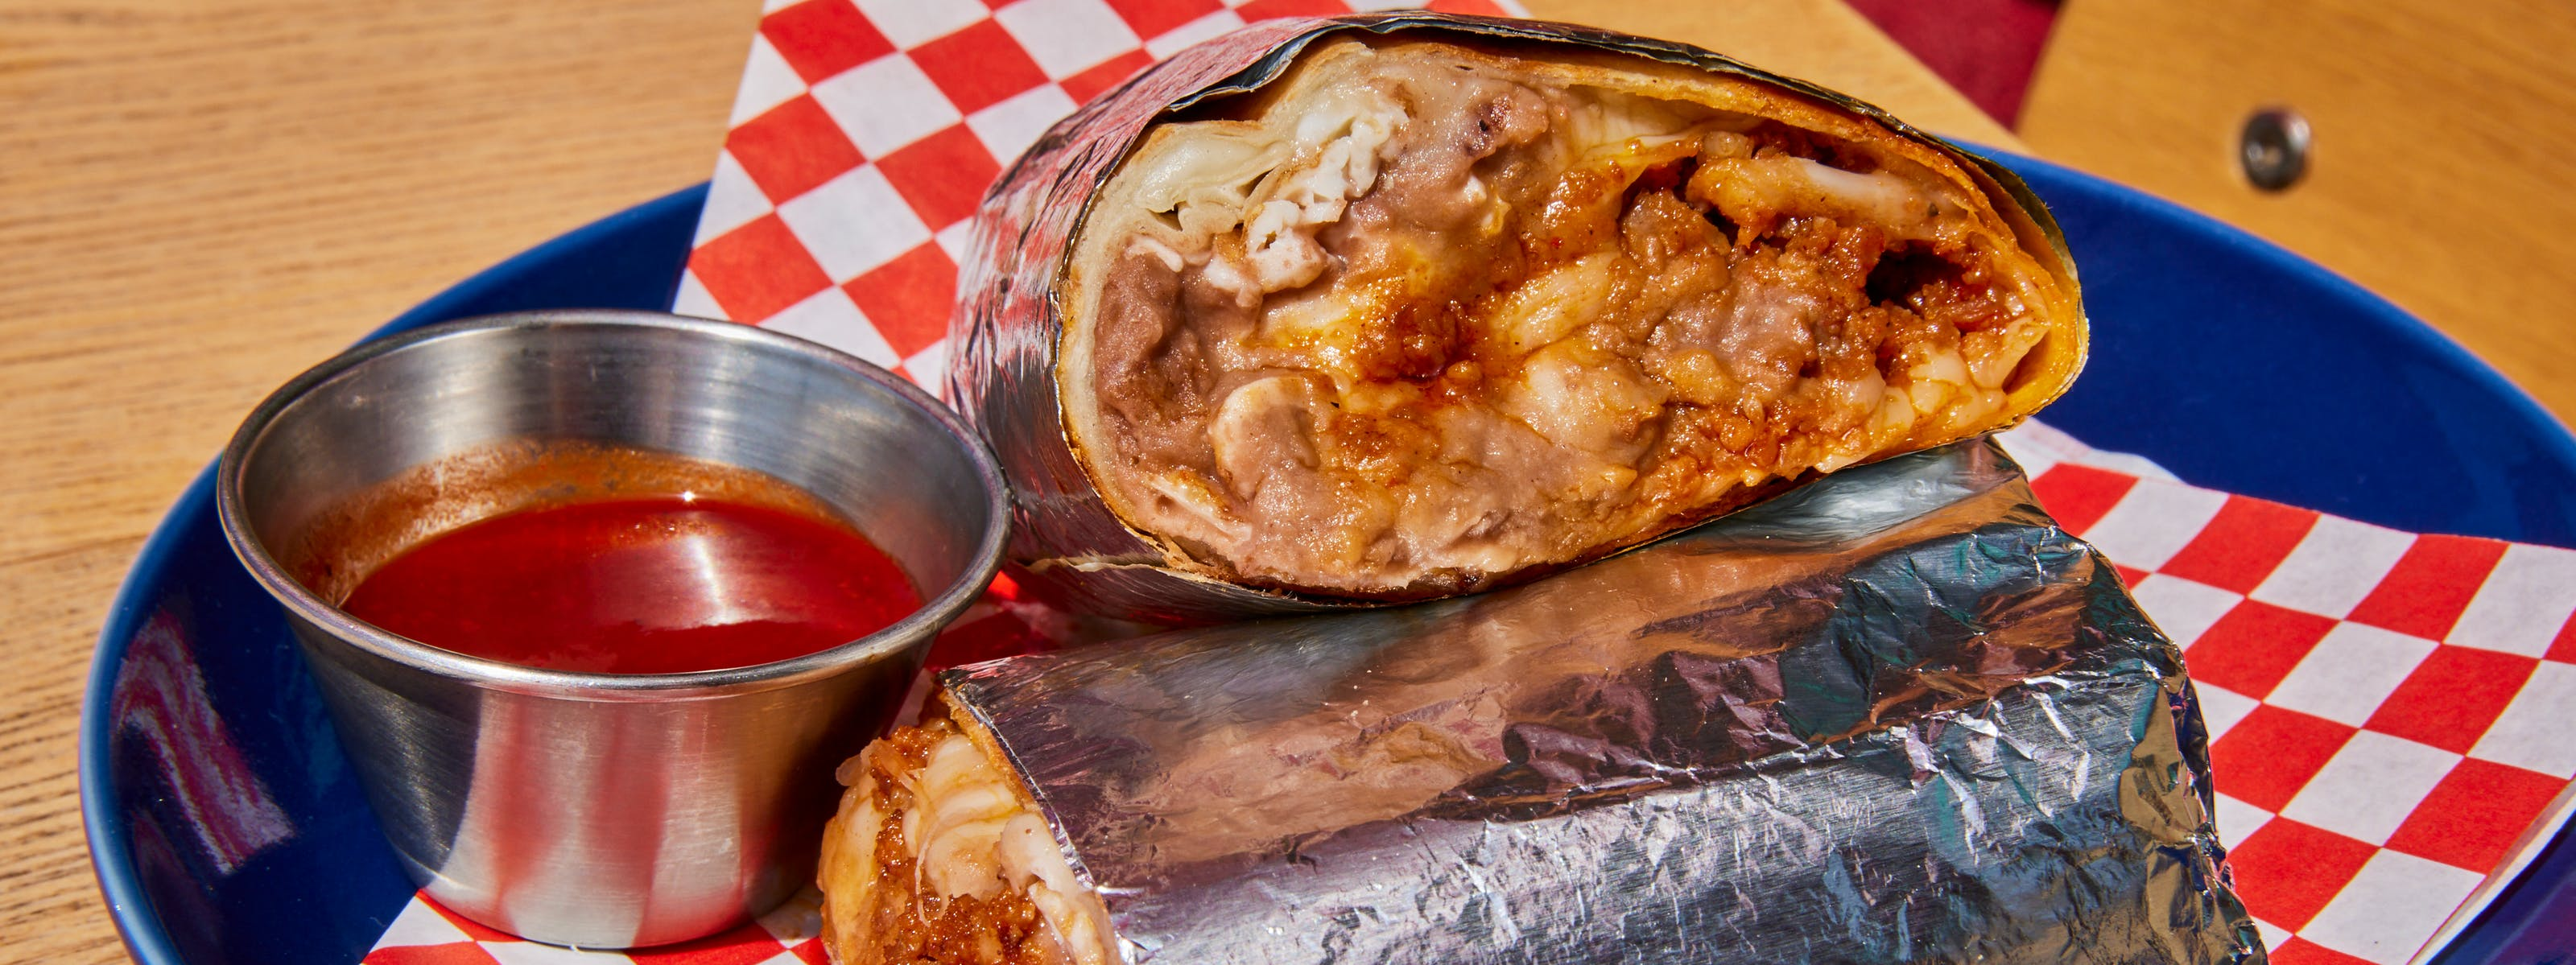 The Best New Breakfast Burritos In LA - Los Angeles - The Infatuation